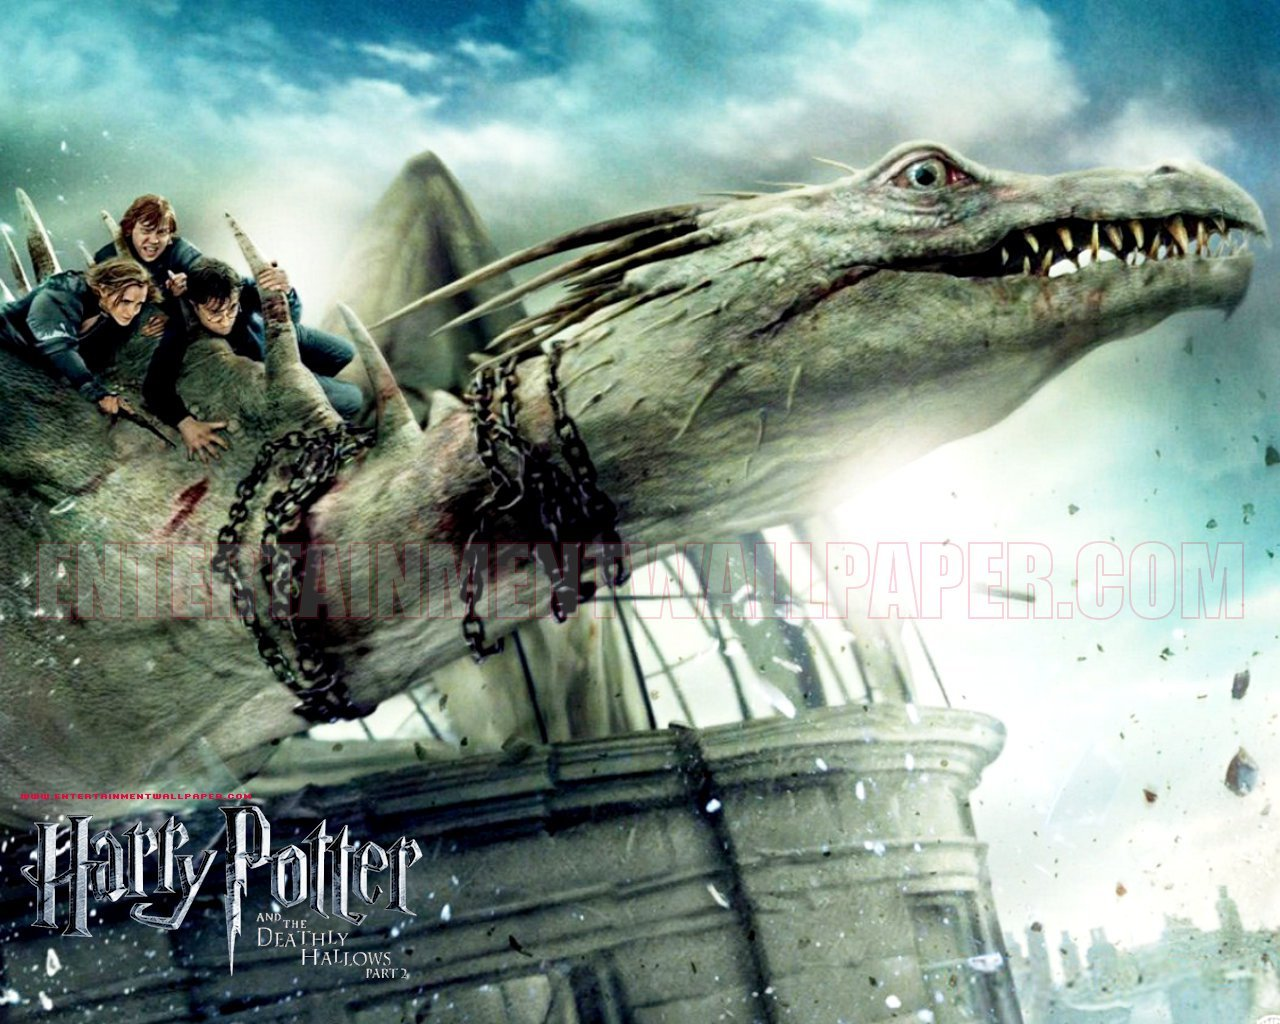 Harry Potter And The Deathly Hallows - HD Wallpaper